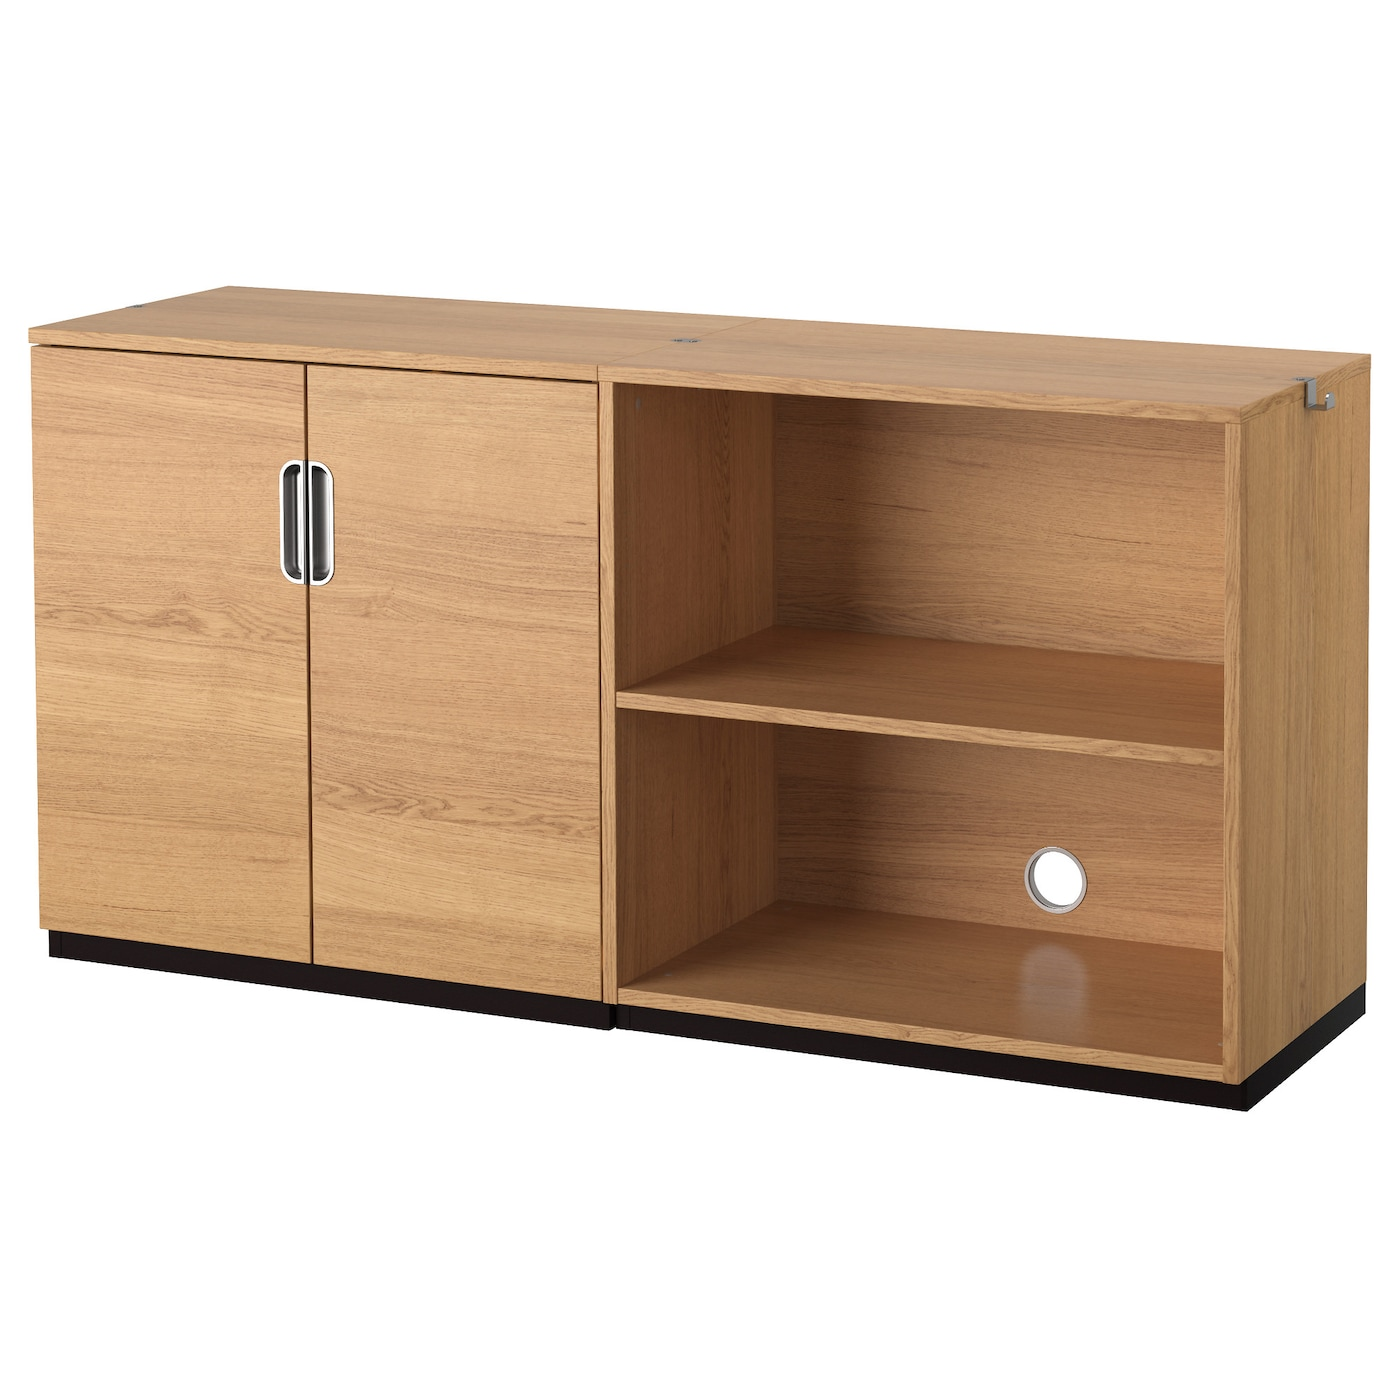 galant storage combination oak veneer 160x80 cm ikea. Black Bedroom Furniture Sets. Home Design Ideas